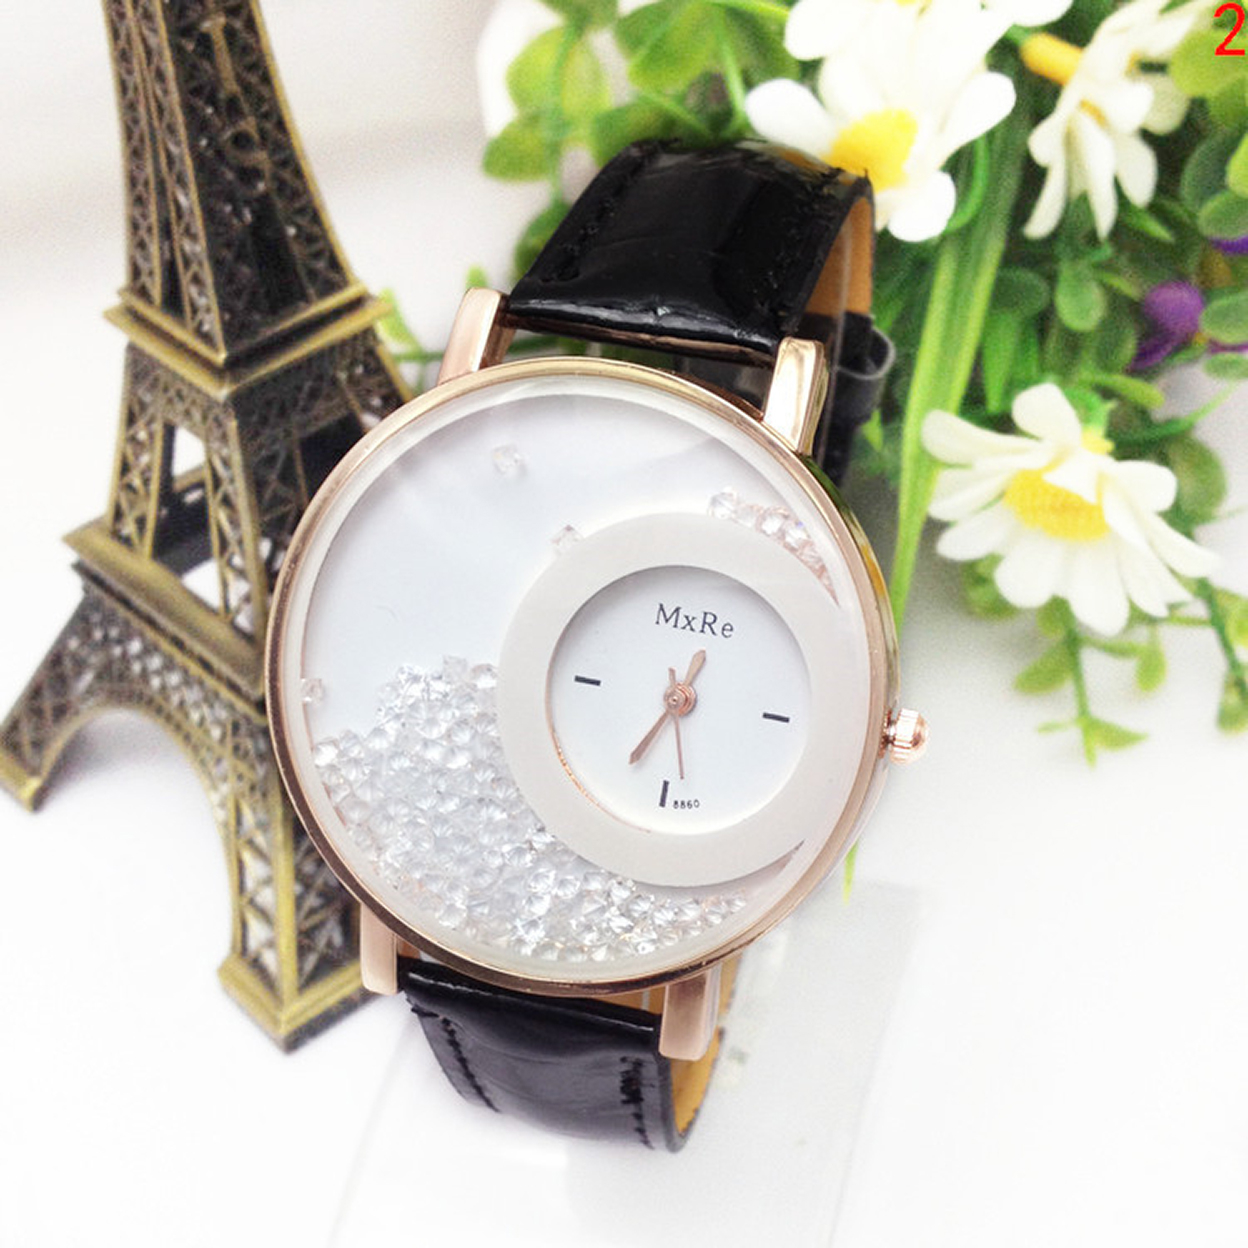 Trendy Fashion Watch With Moving Crystals Comes In 8 Different Colors - Black 56a069f84e3d6fd56f8b4601